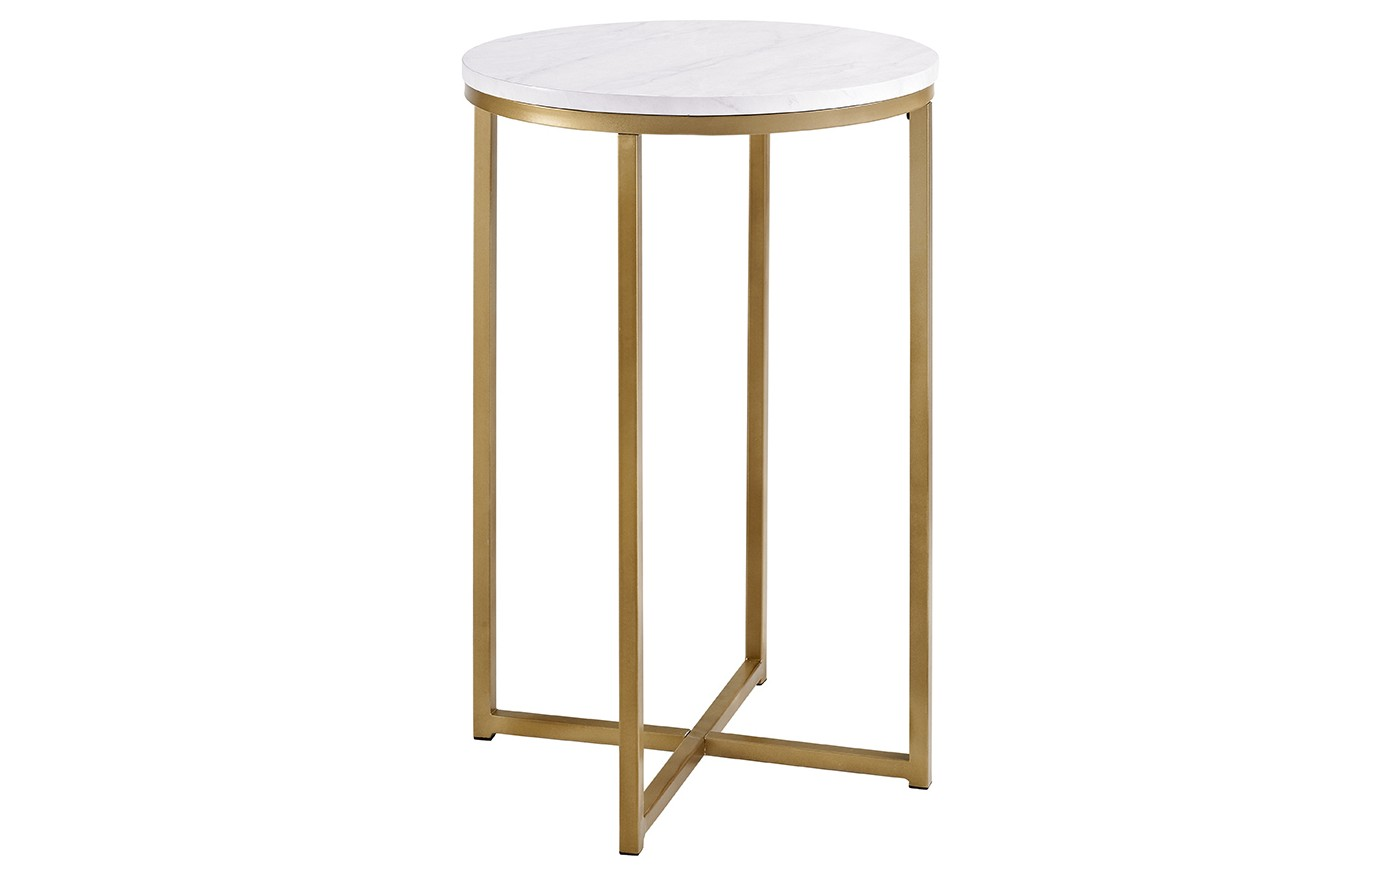 end tables target home that upgrade your living hourglass accent table room for less than mahogany lime green outdoor side glass lamp shades lamps bar cart three tier antique